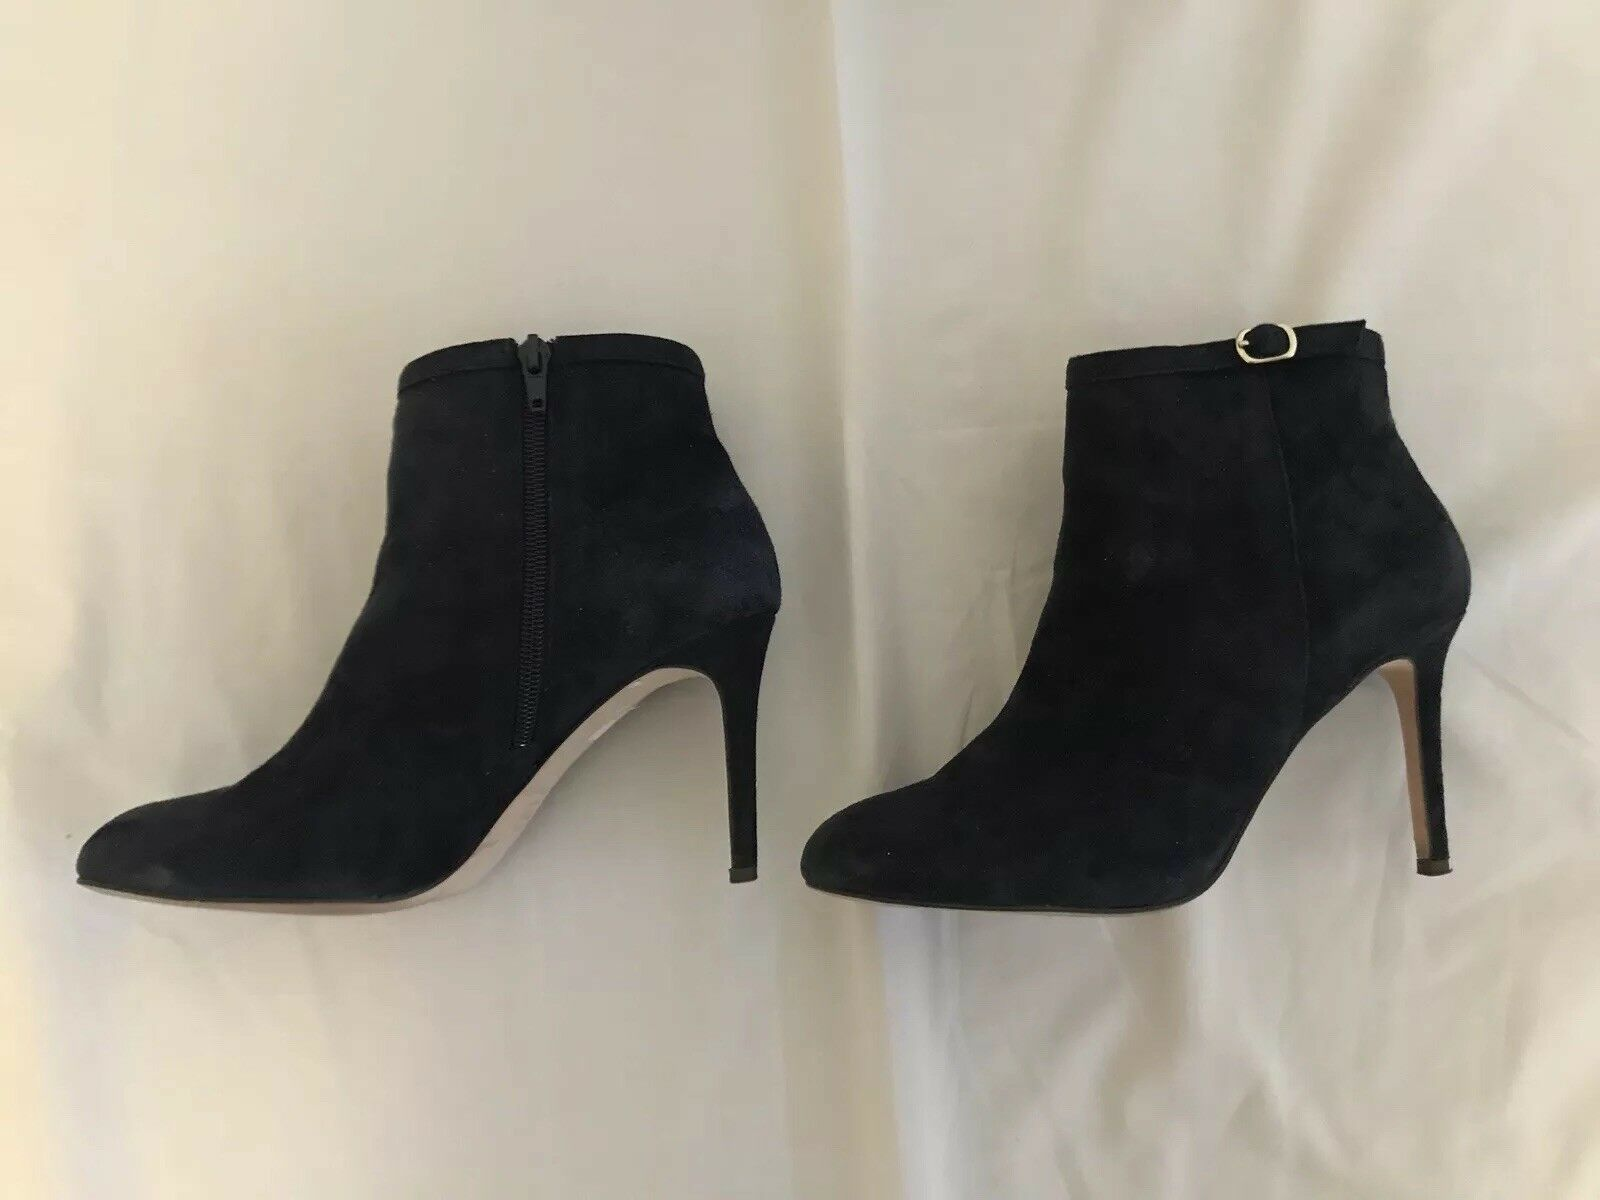 7- Navy Suede Blau Suede Navy Ankle BootAnn TaylorBeatrice Buckle Excellent Condition 3cdea6